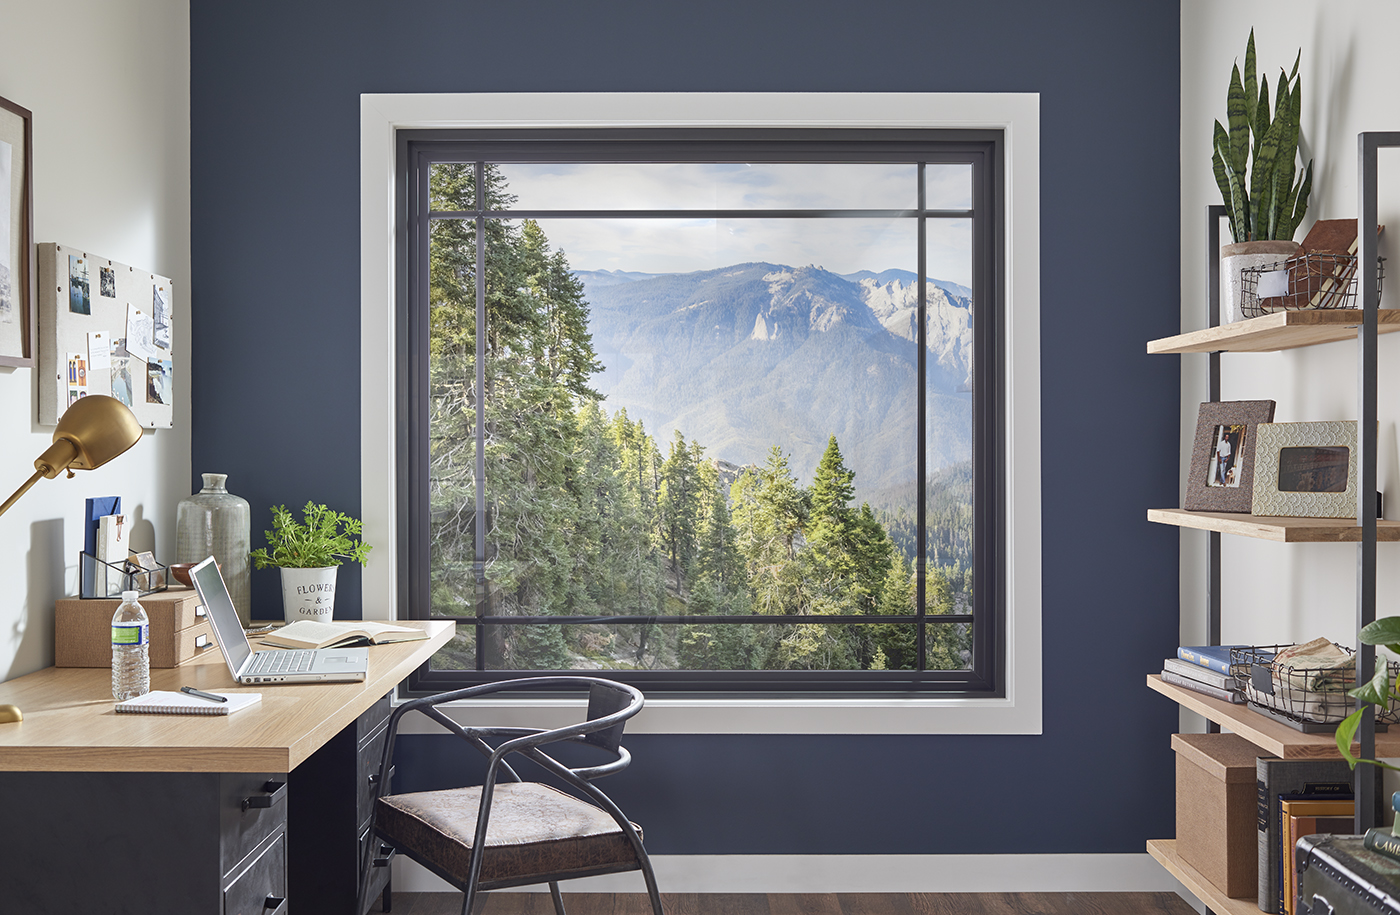 Picture style window in a home office.